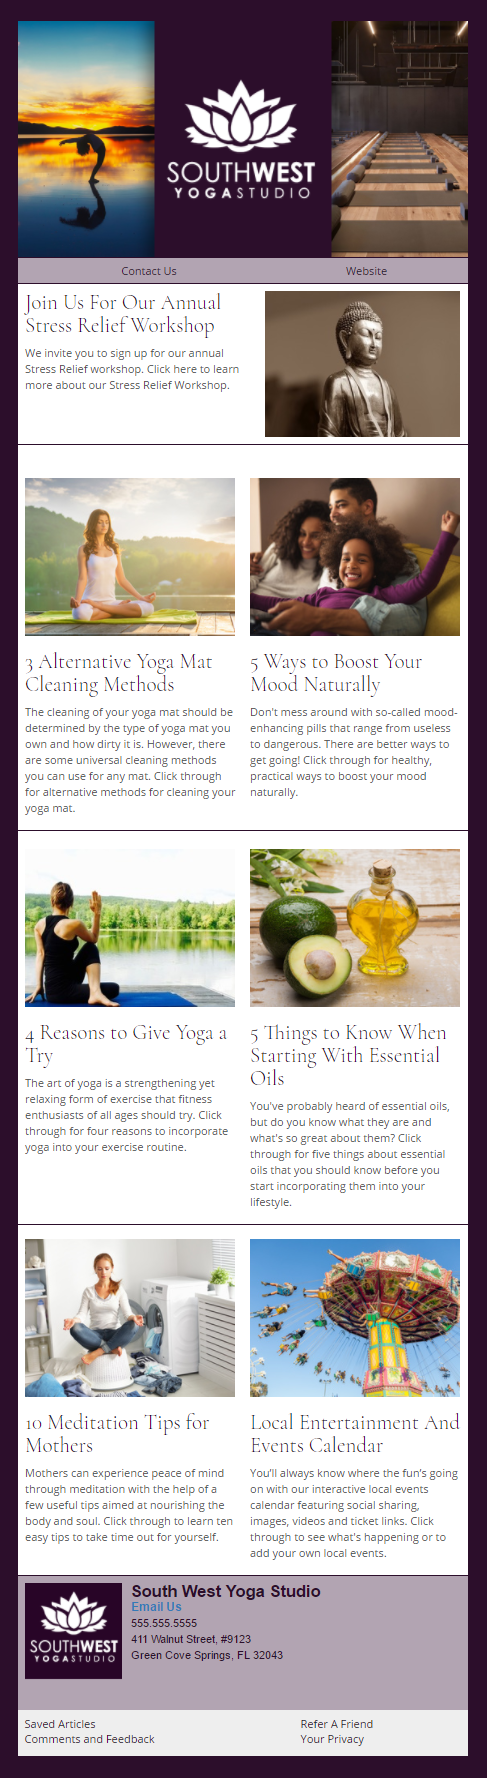 SouthWest Yoga Studio - IndustryNewsletters Sample Email Newsletter